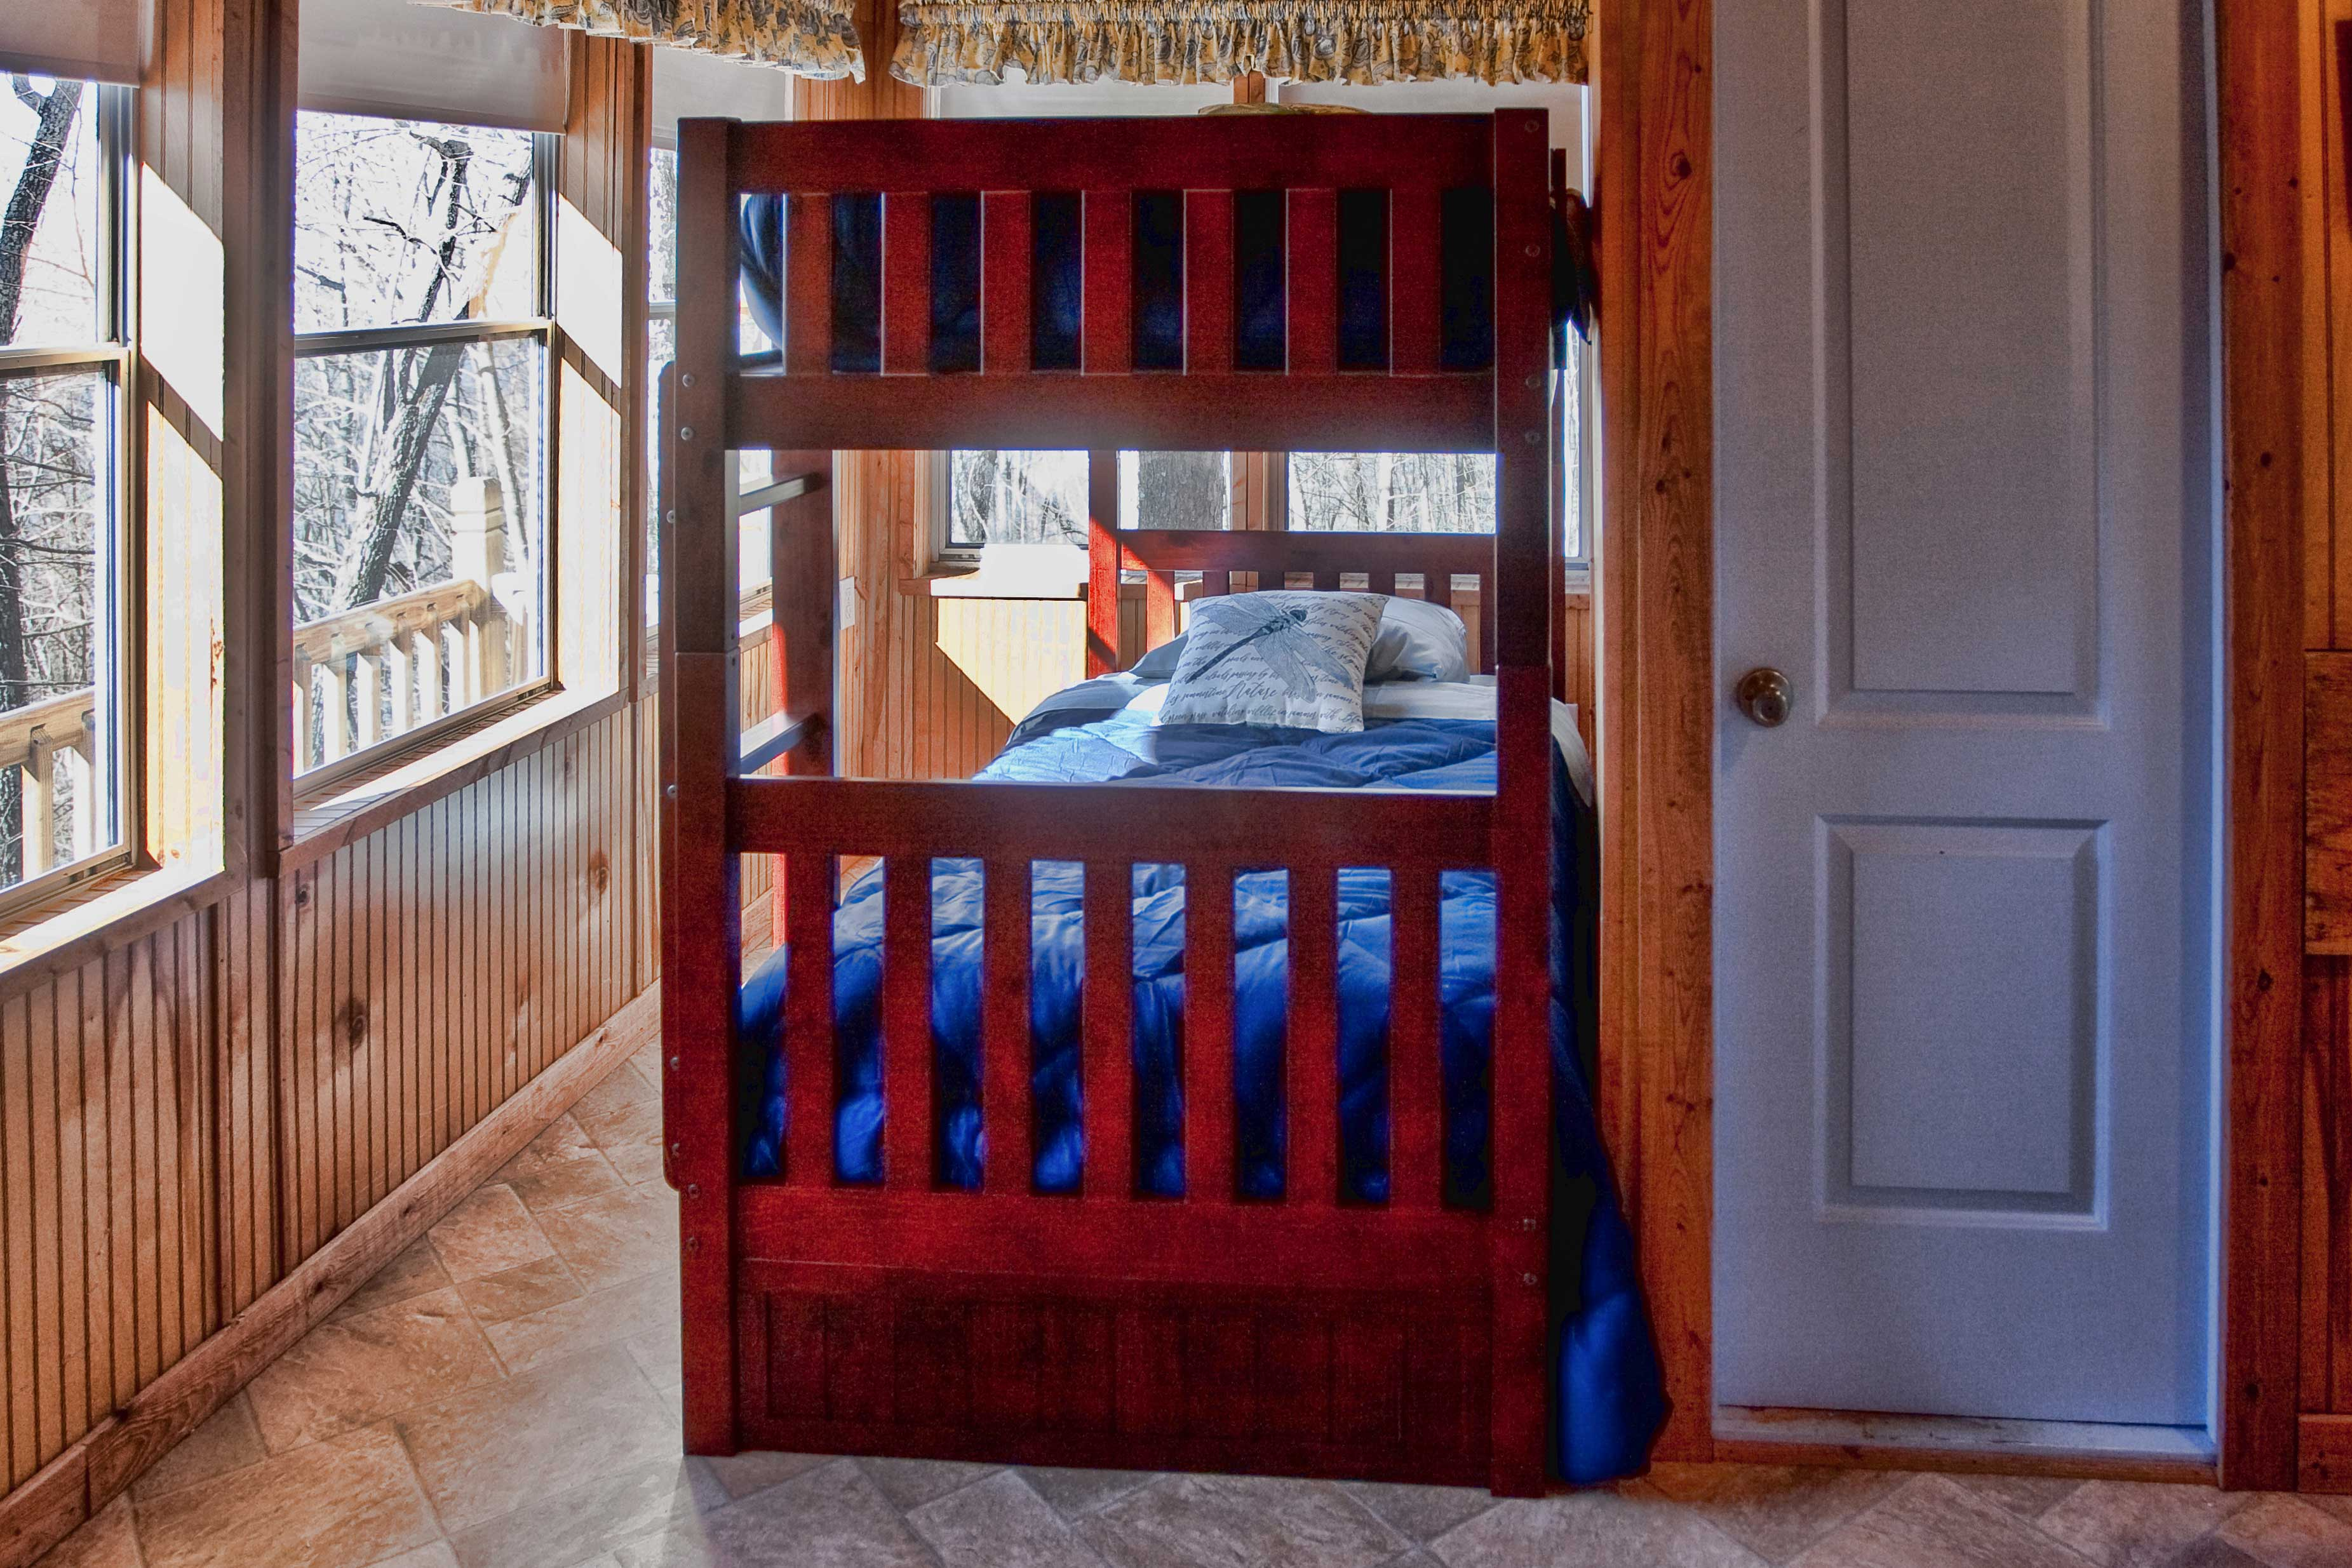 The second bedroom features a twin bunk bed.